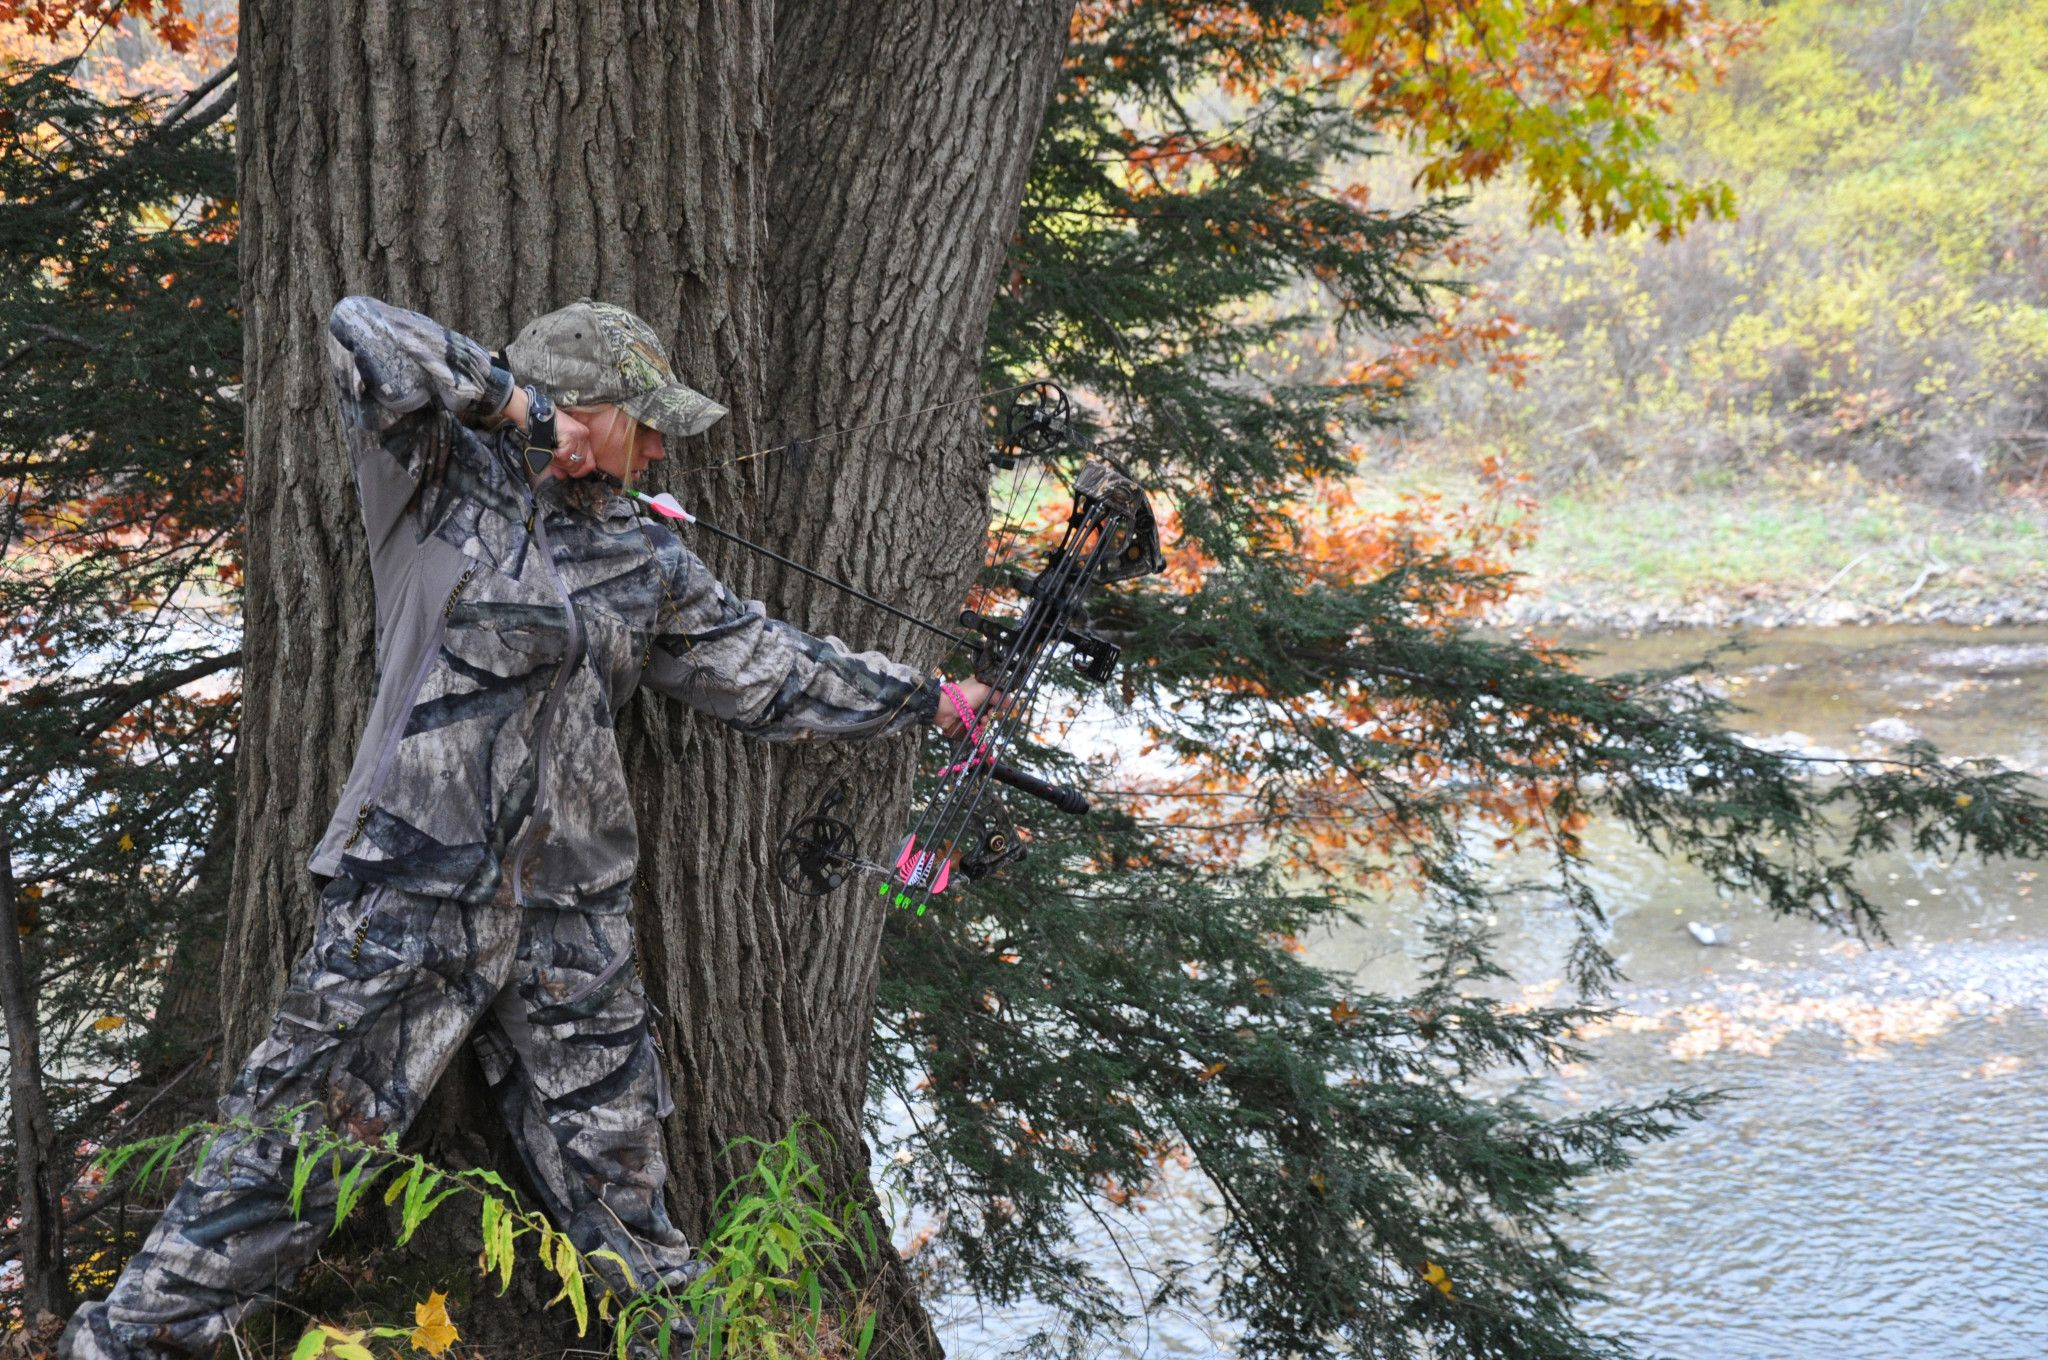 An image of a hunter preparing for a shot.